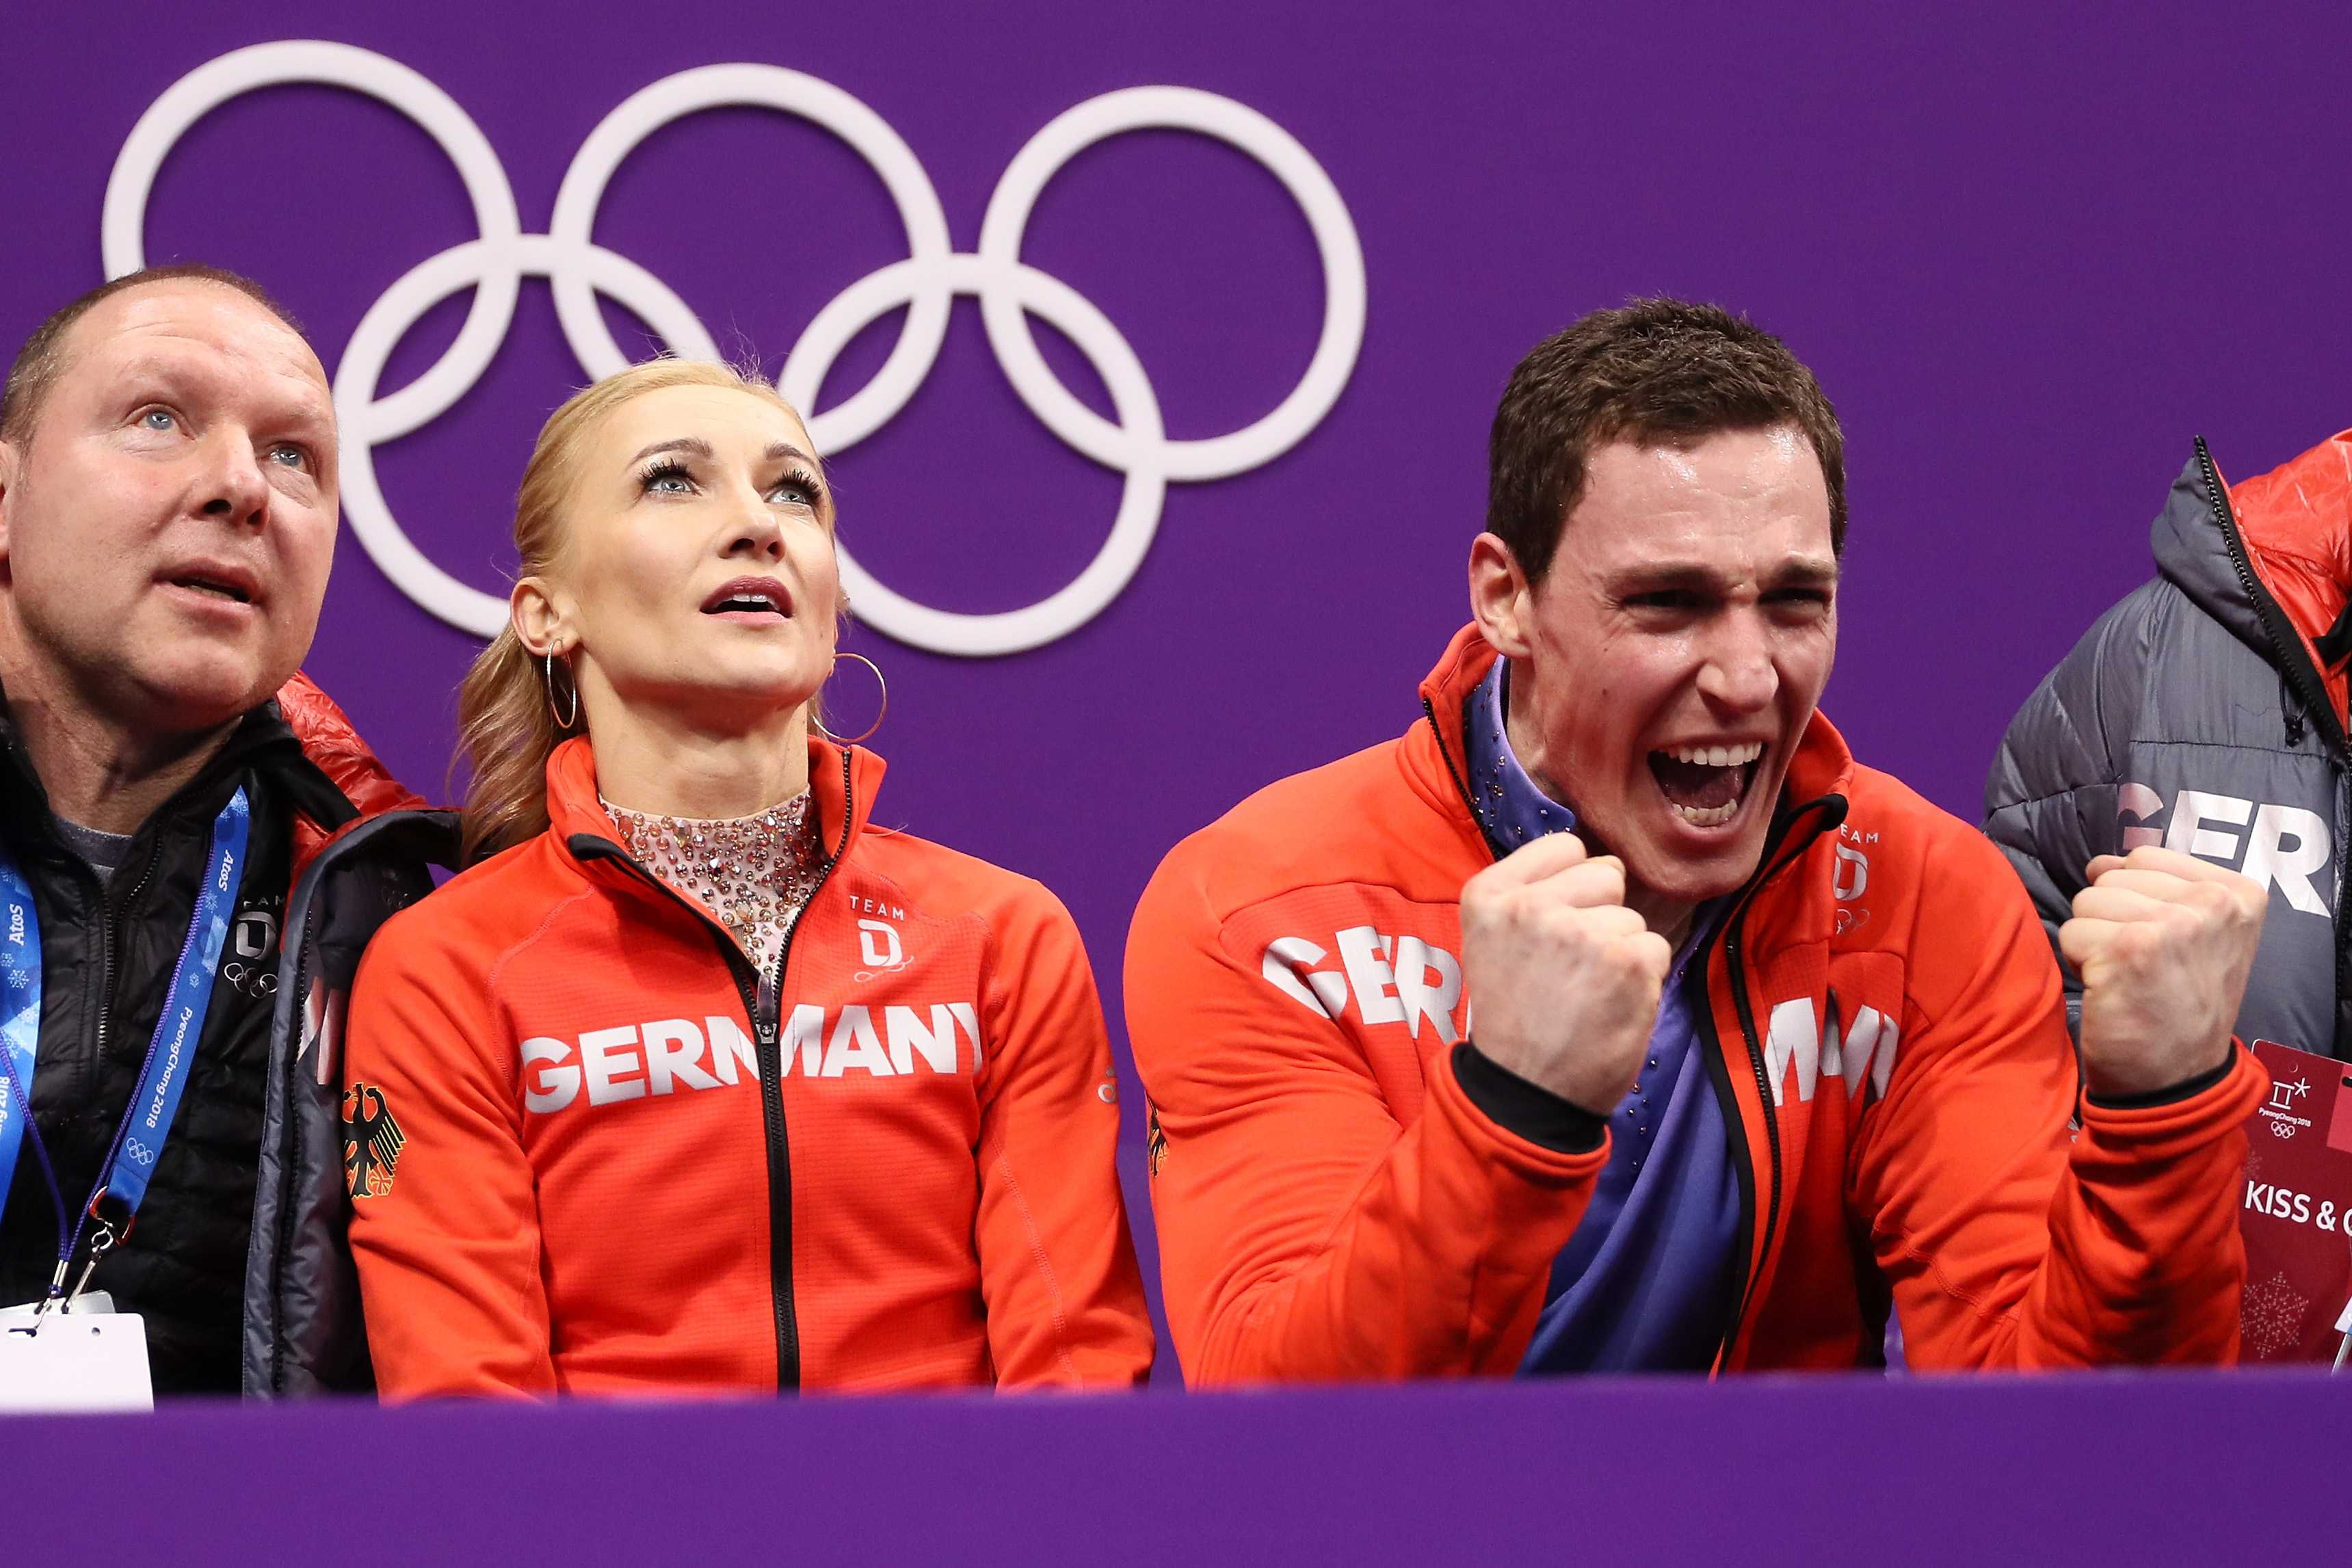 The Best Gold Medal Reaction of PyeongChang So Far Is Aliona Savchenko's